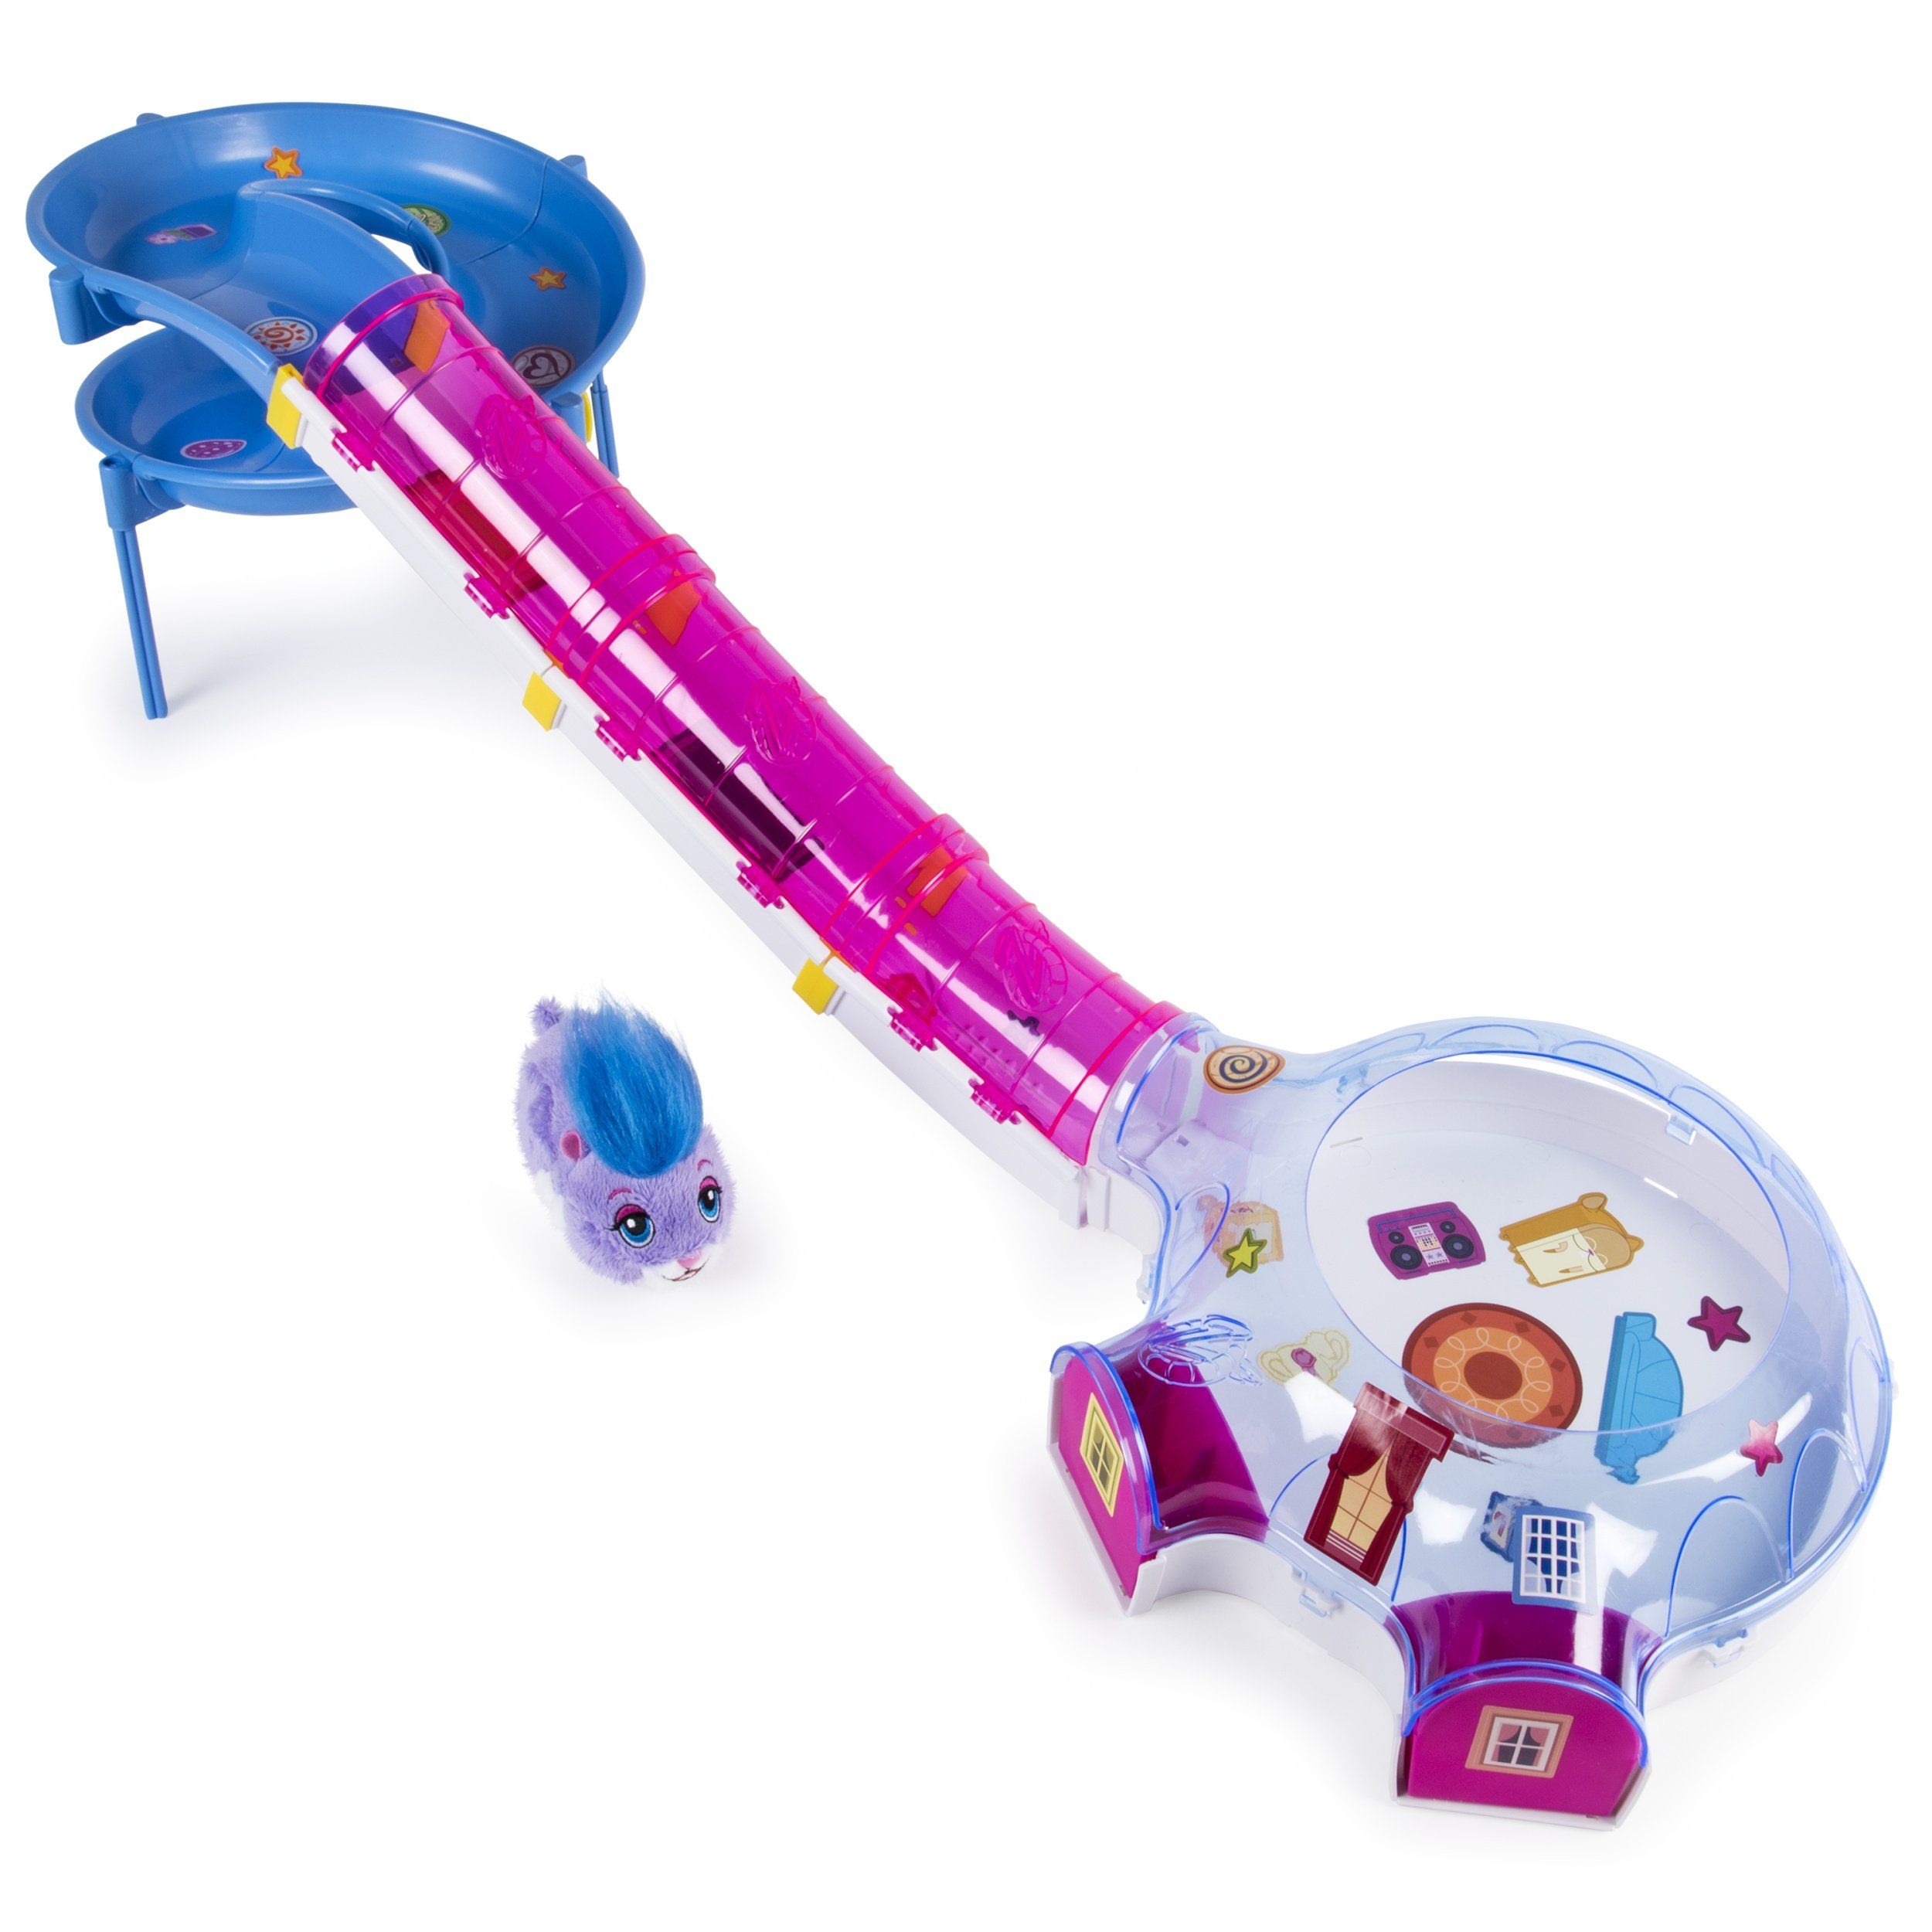 Zhu Zhu Pets Hamster House Play Set With Slide And Tunnel You Could Get Additional Information At The Picture Link Thi Hamster House Hamster Hamster Toys